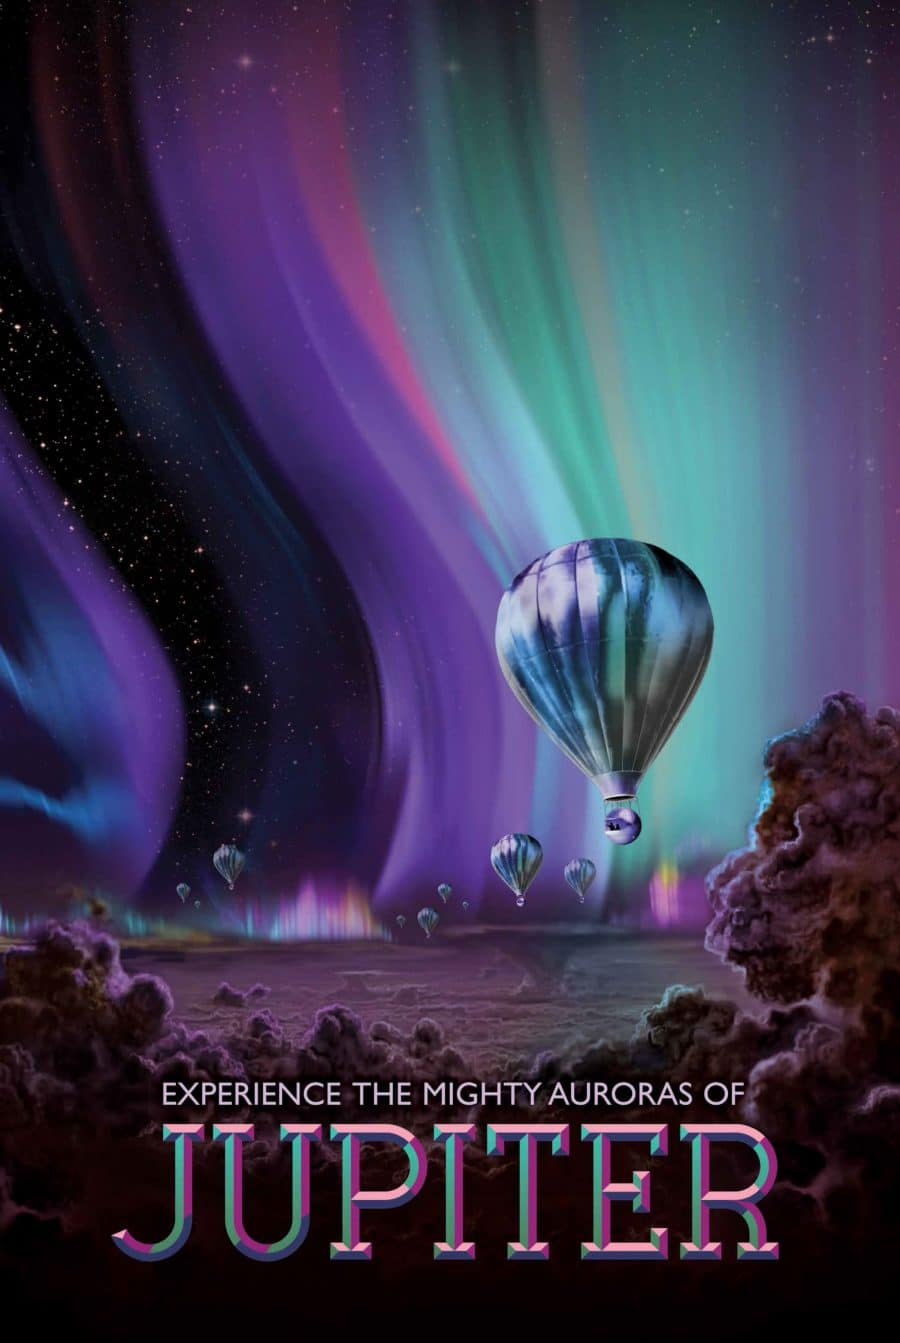 Jupiter Planet Visions of the Future Poster Series Designed by JPL